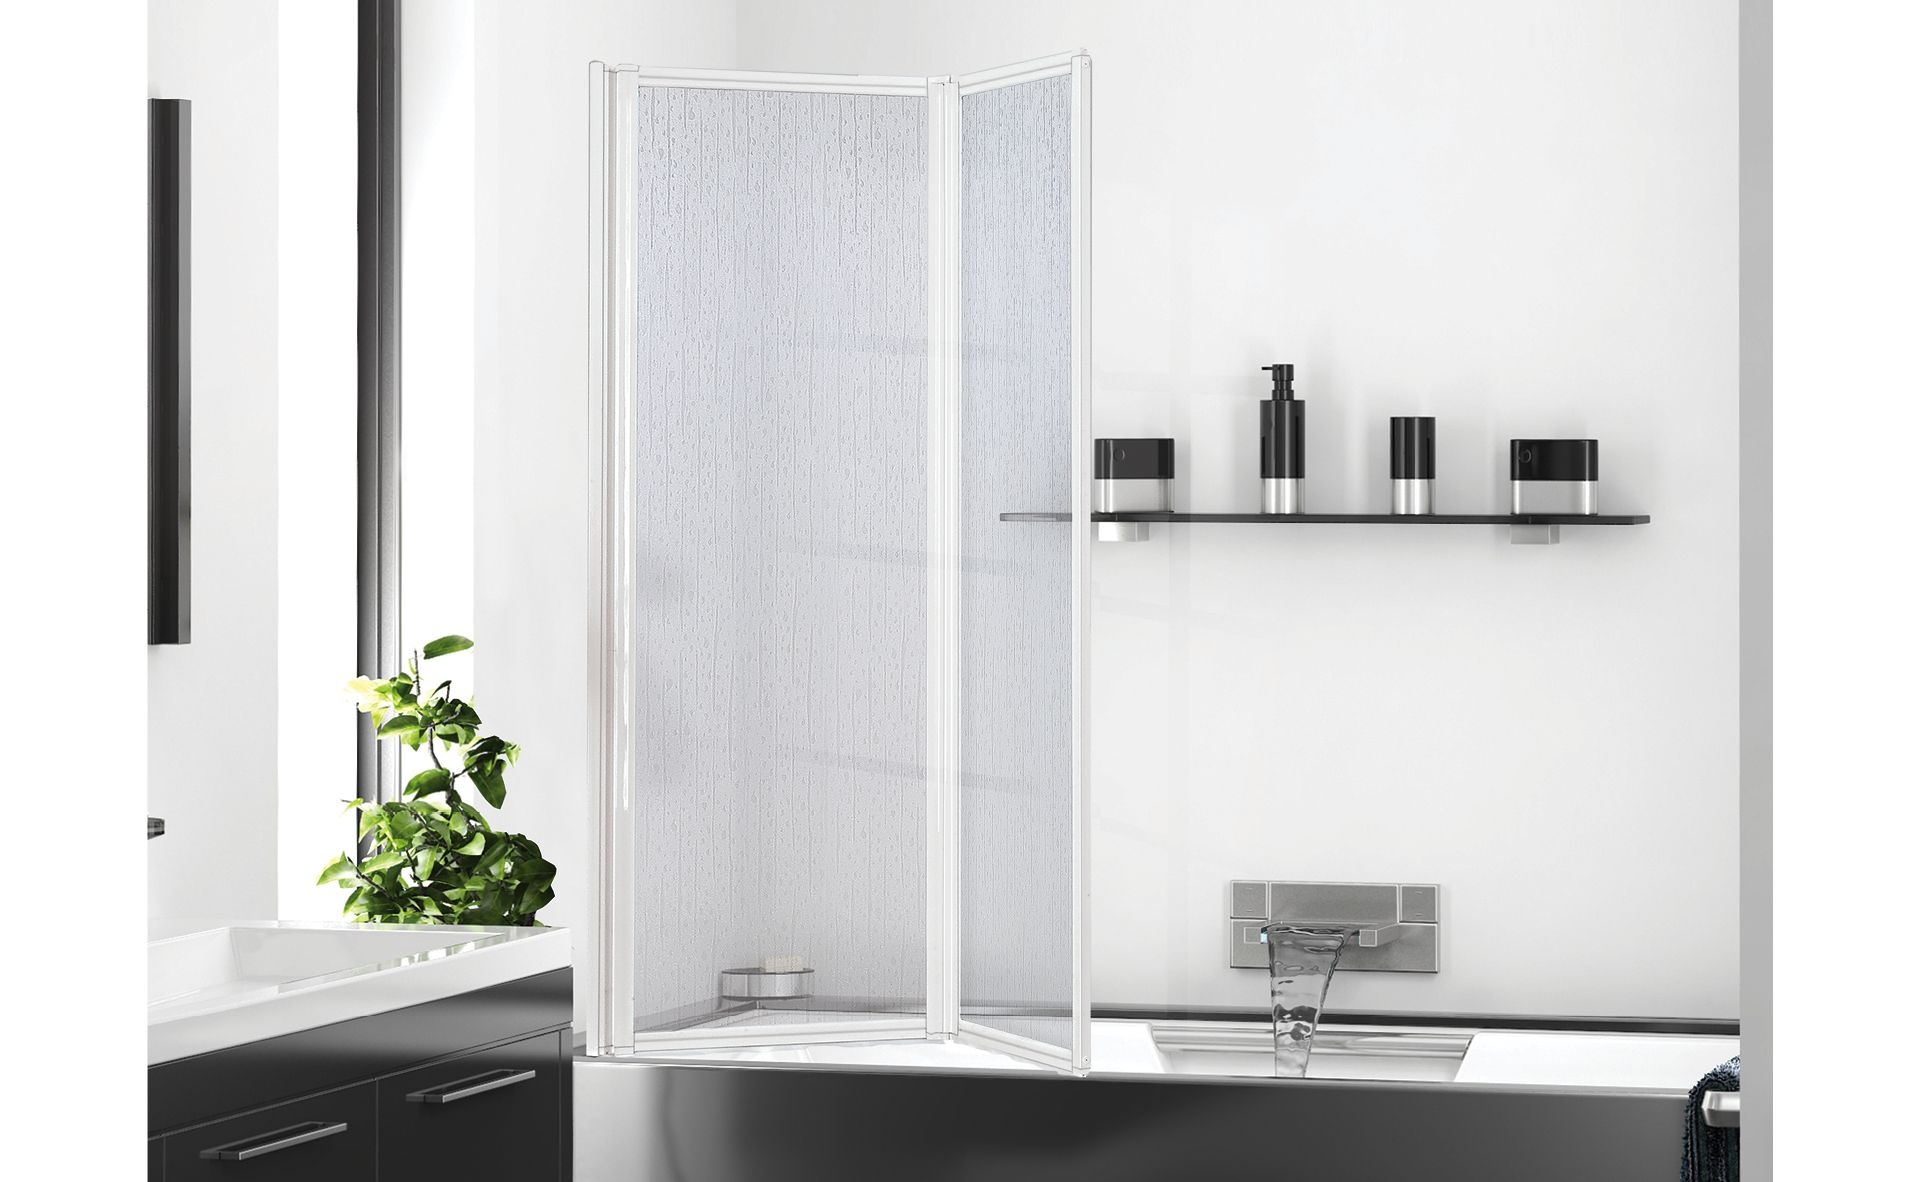 SERIE BOX A PARATIE VASCA VANISHING SHOWER